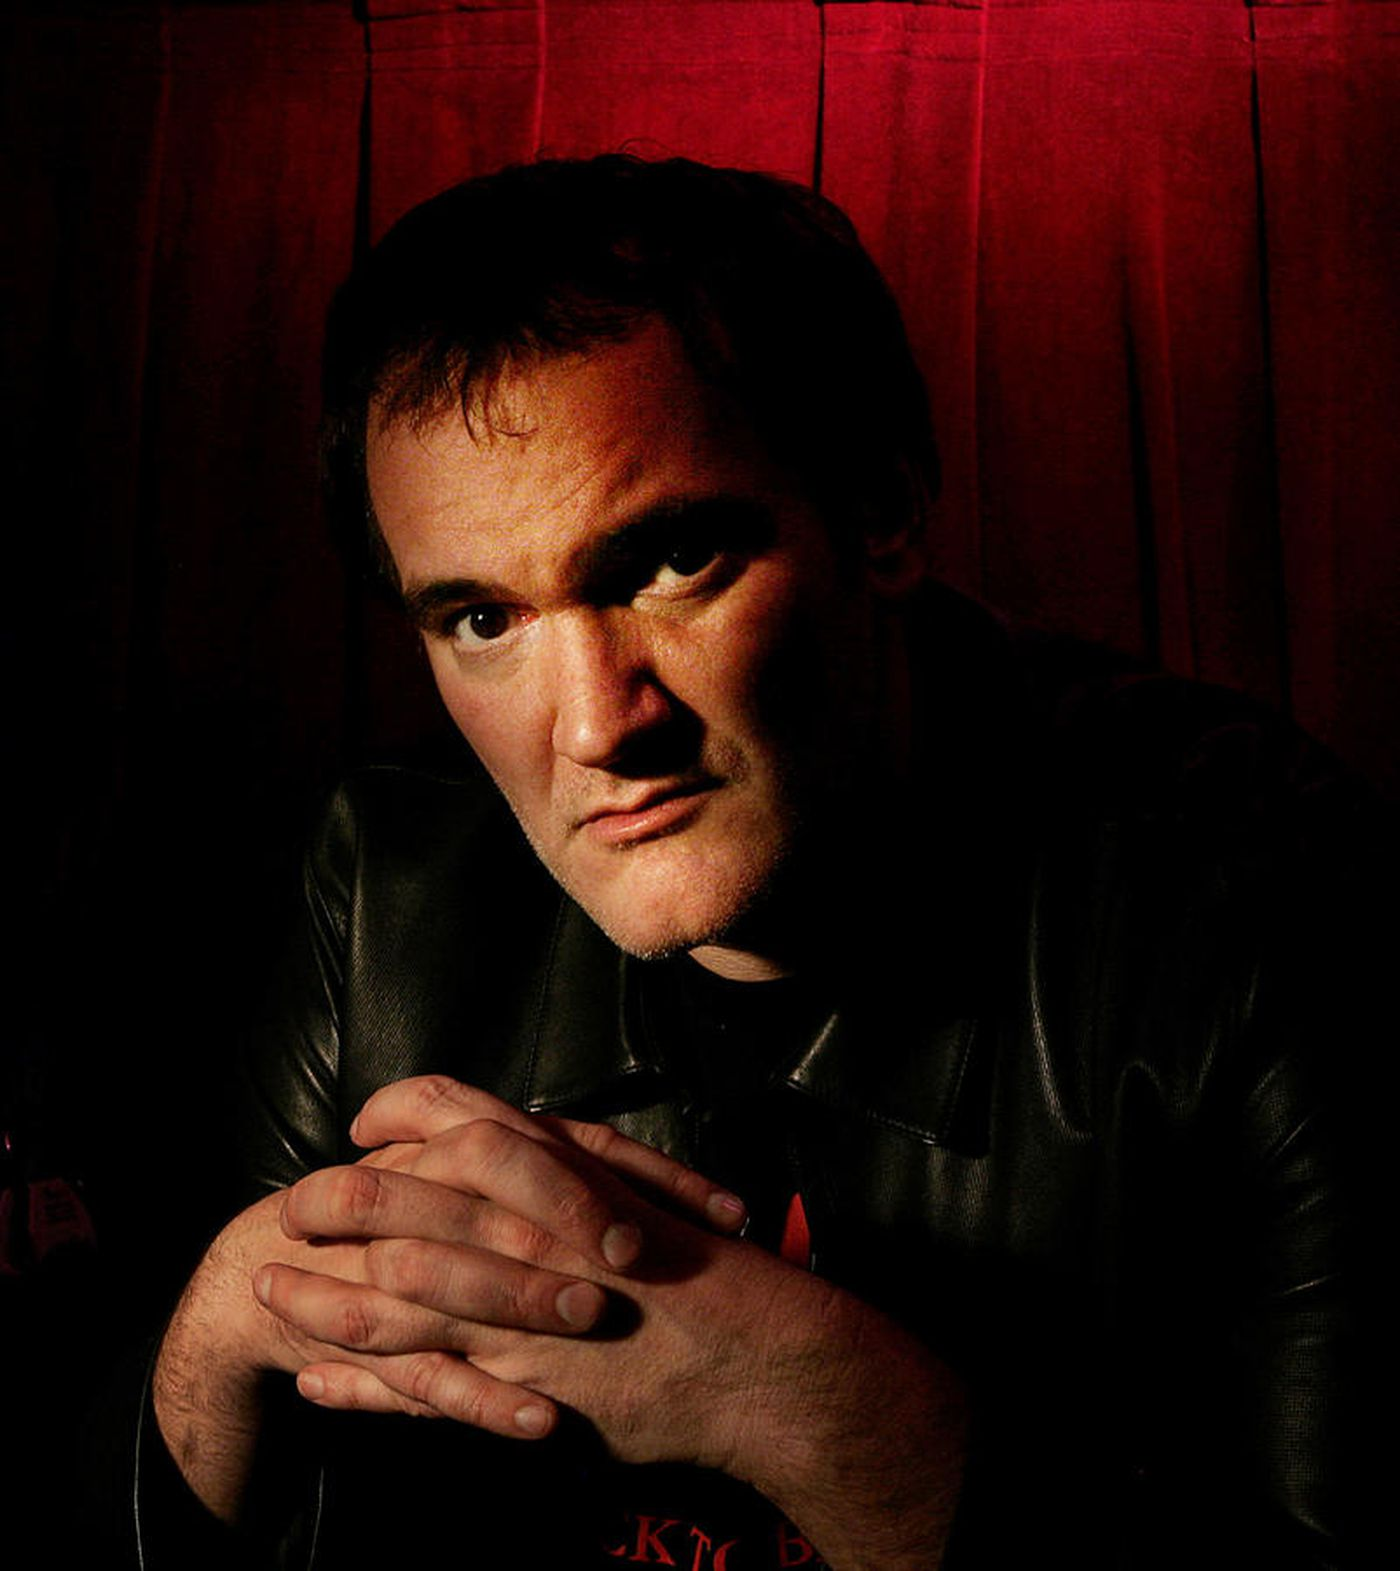 Happy birthday to director Quentin Tarantino, who is 55 today